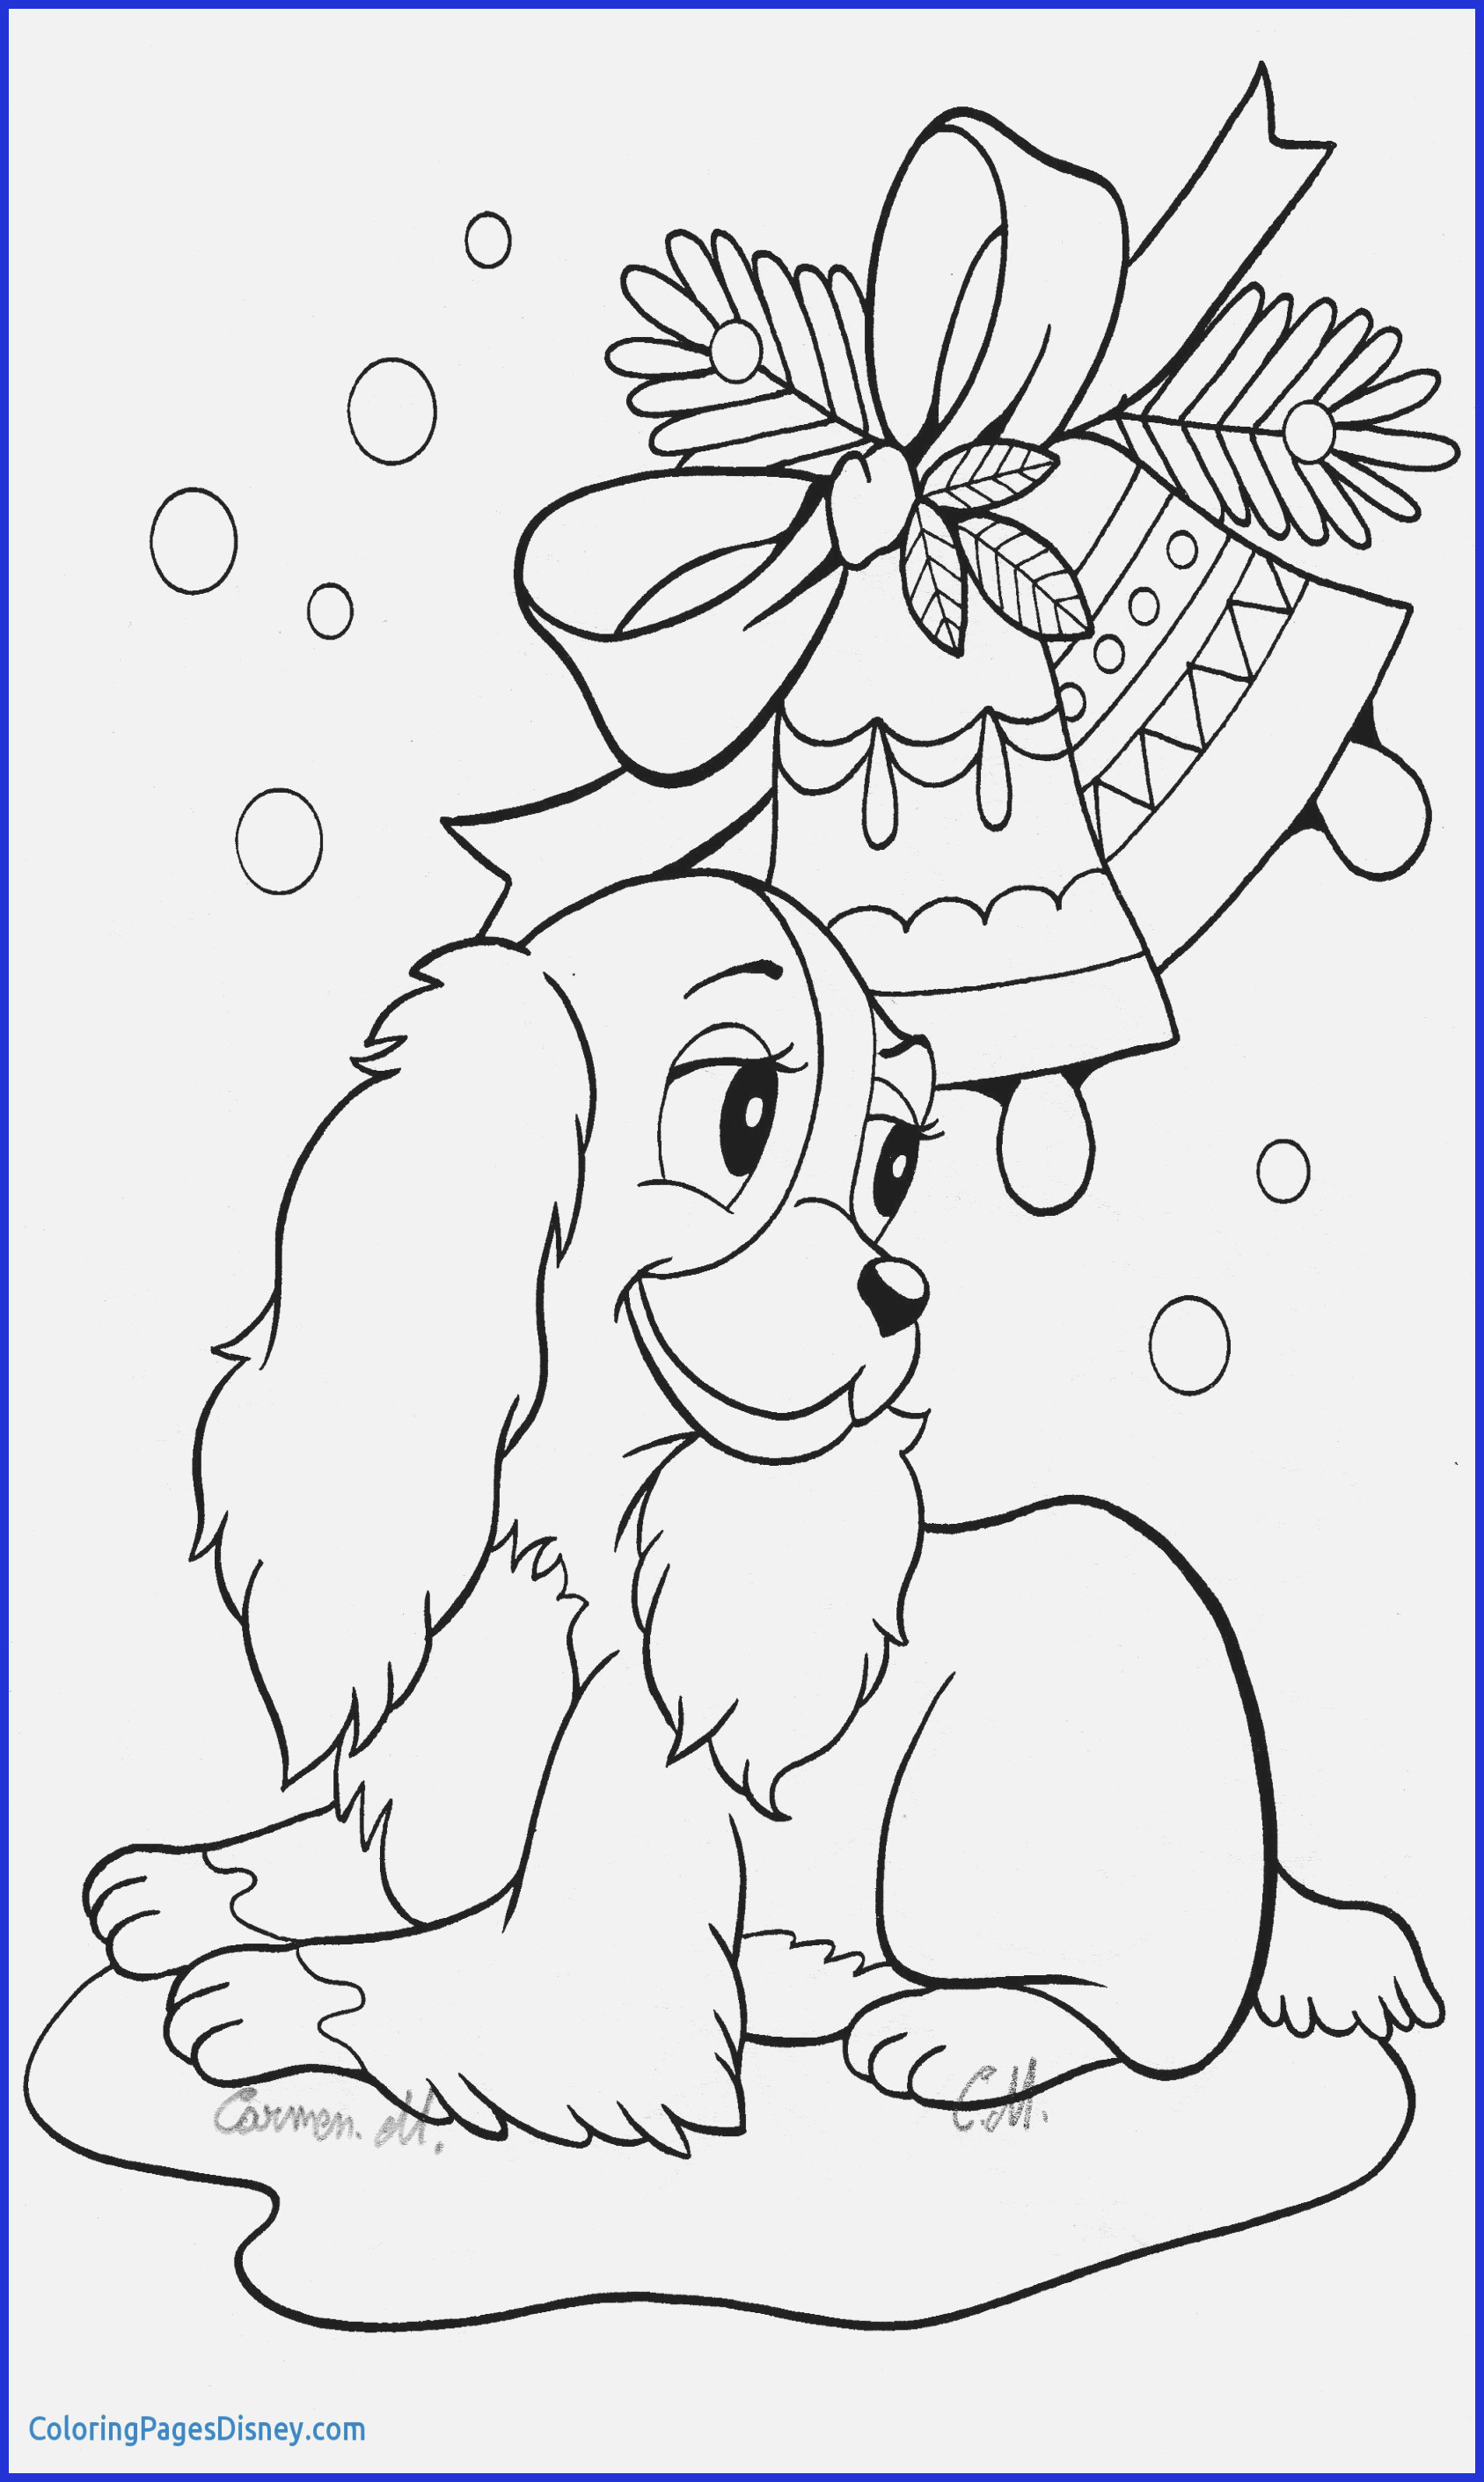 Feelings Coloring Pages For Preschoolers Download